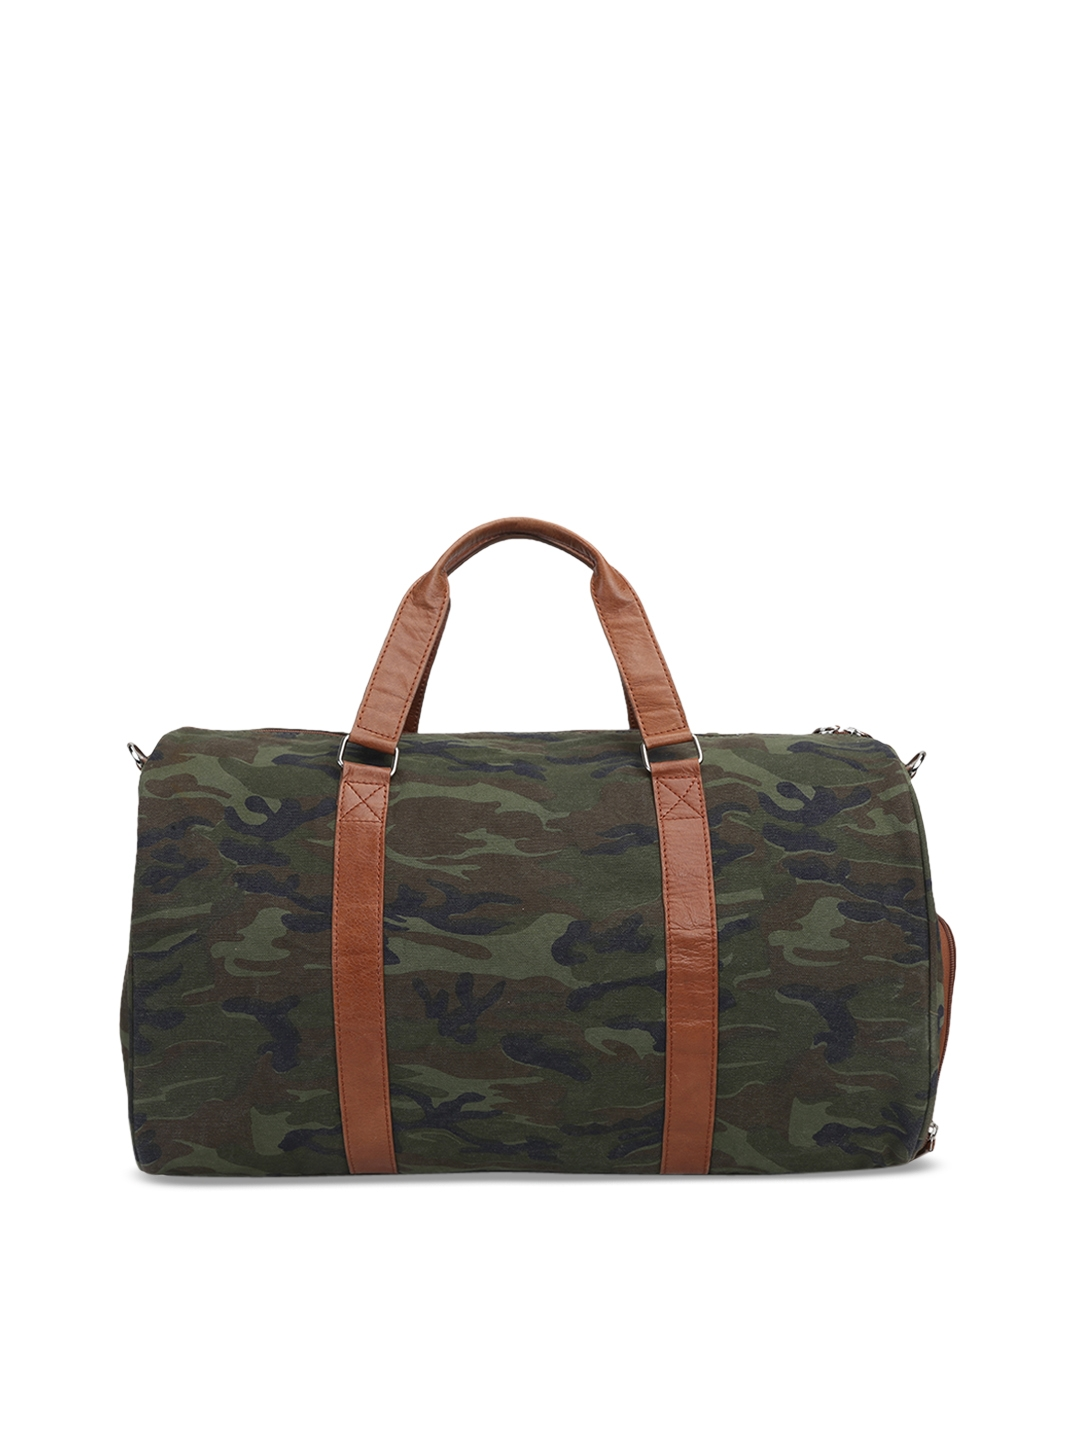 26f17ef156 Buy BARESKIN Green Unisex Leather Duffle Bag - Duffel Bag for Unisex ...